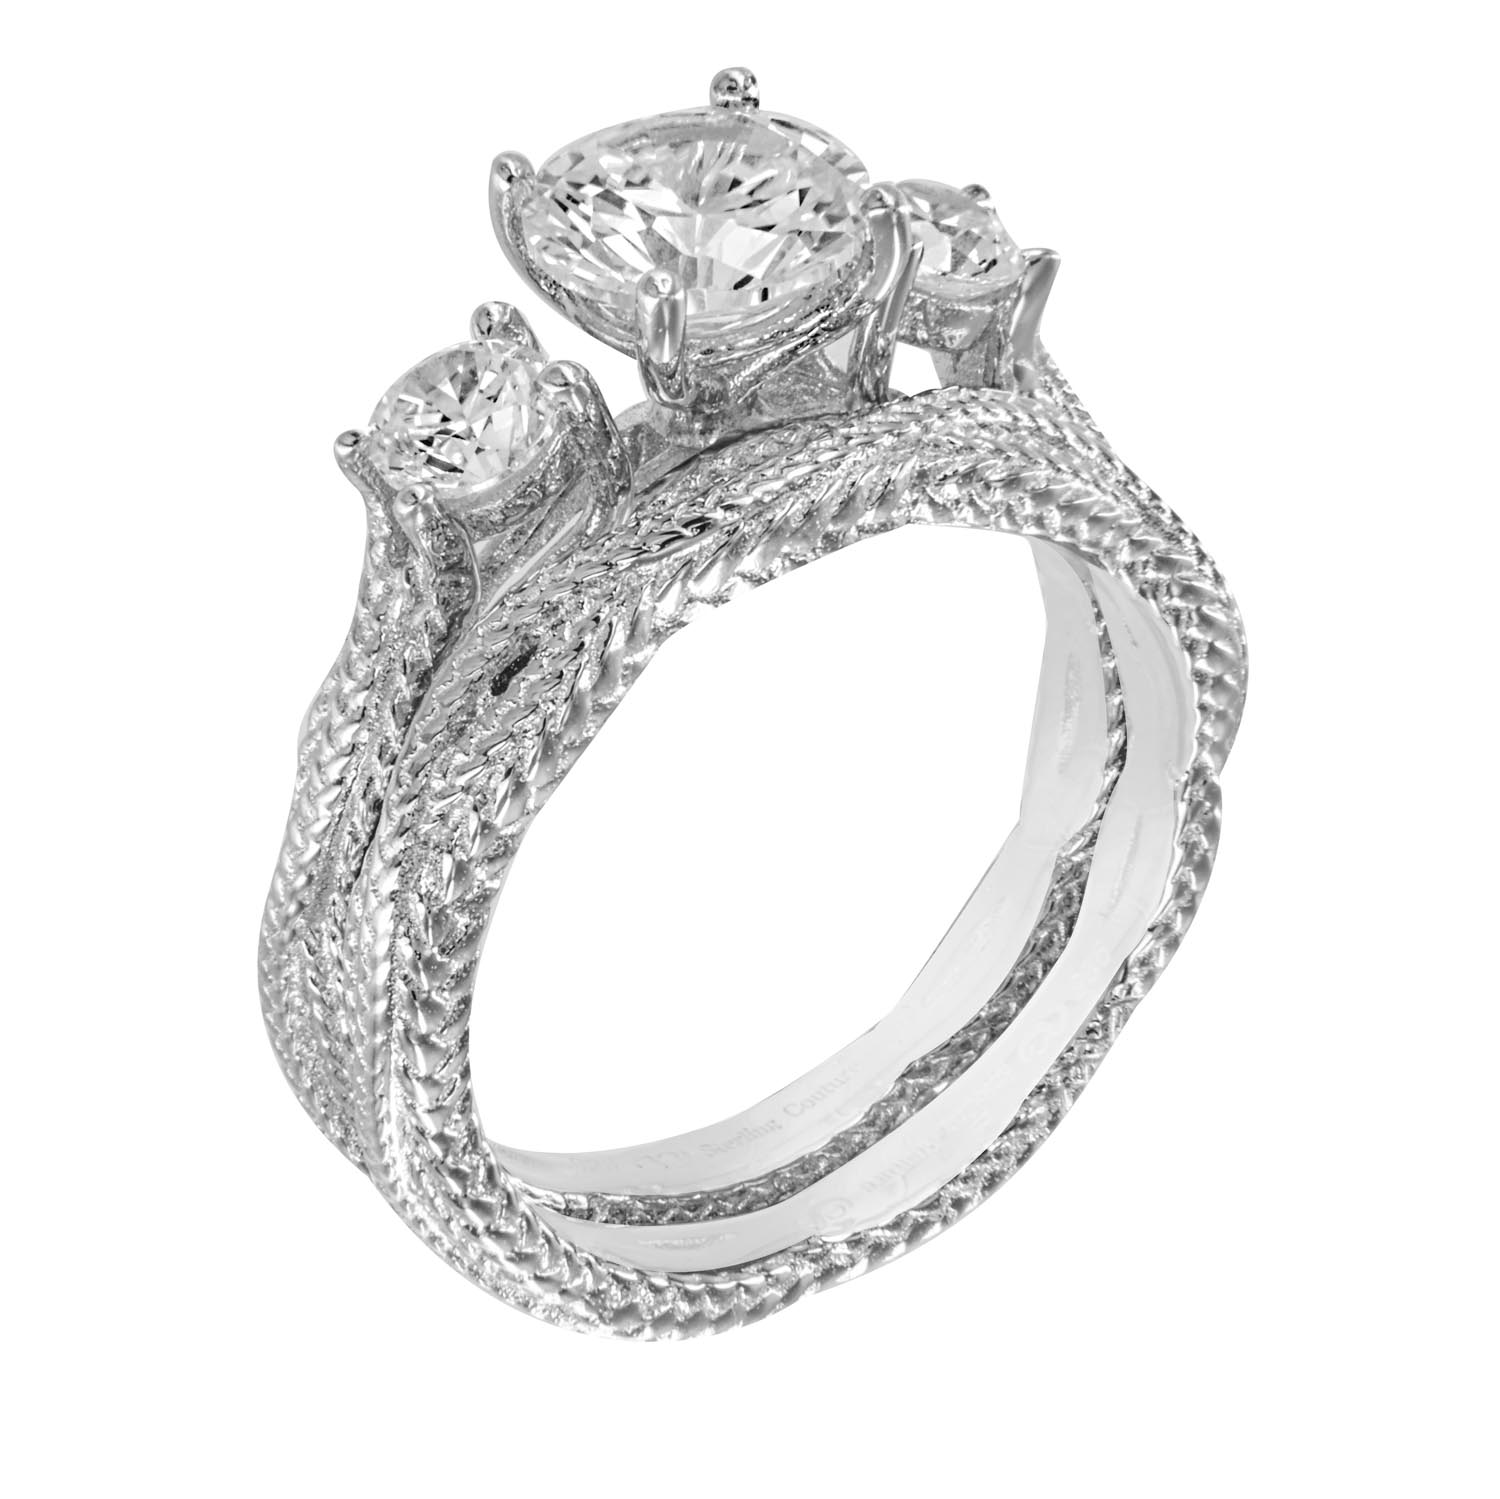 1.25ct brilliant 925 silver braid Sterling Couture wedding ring set